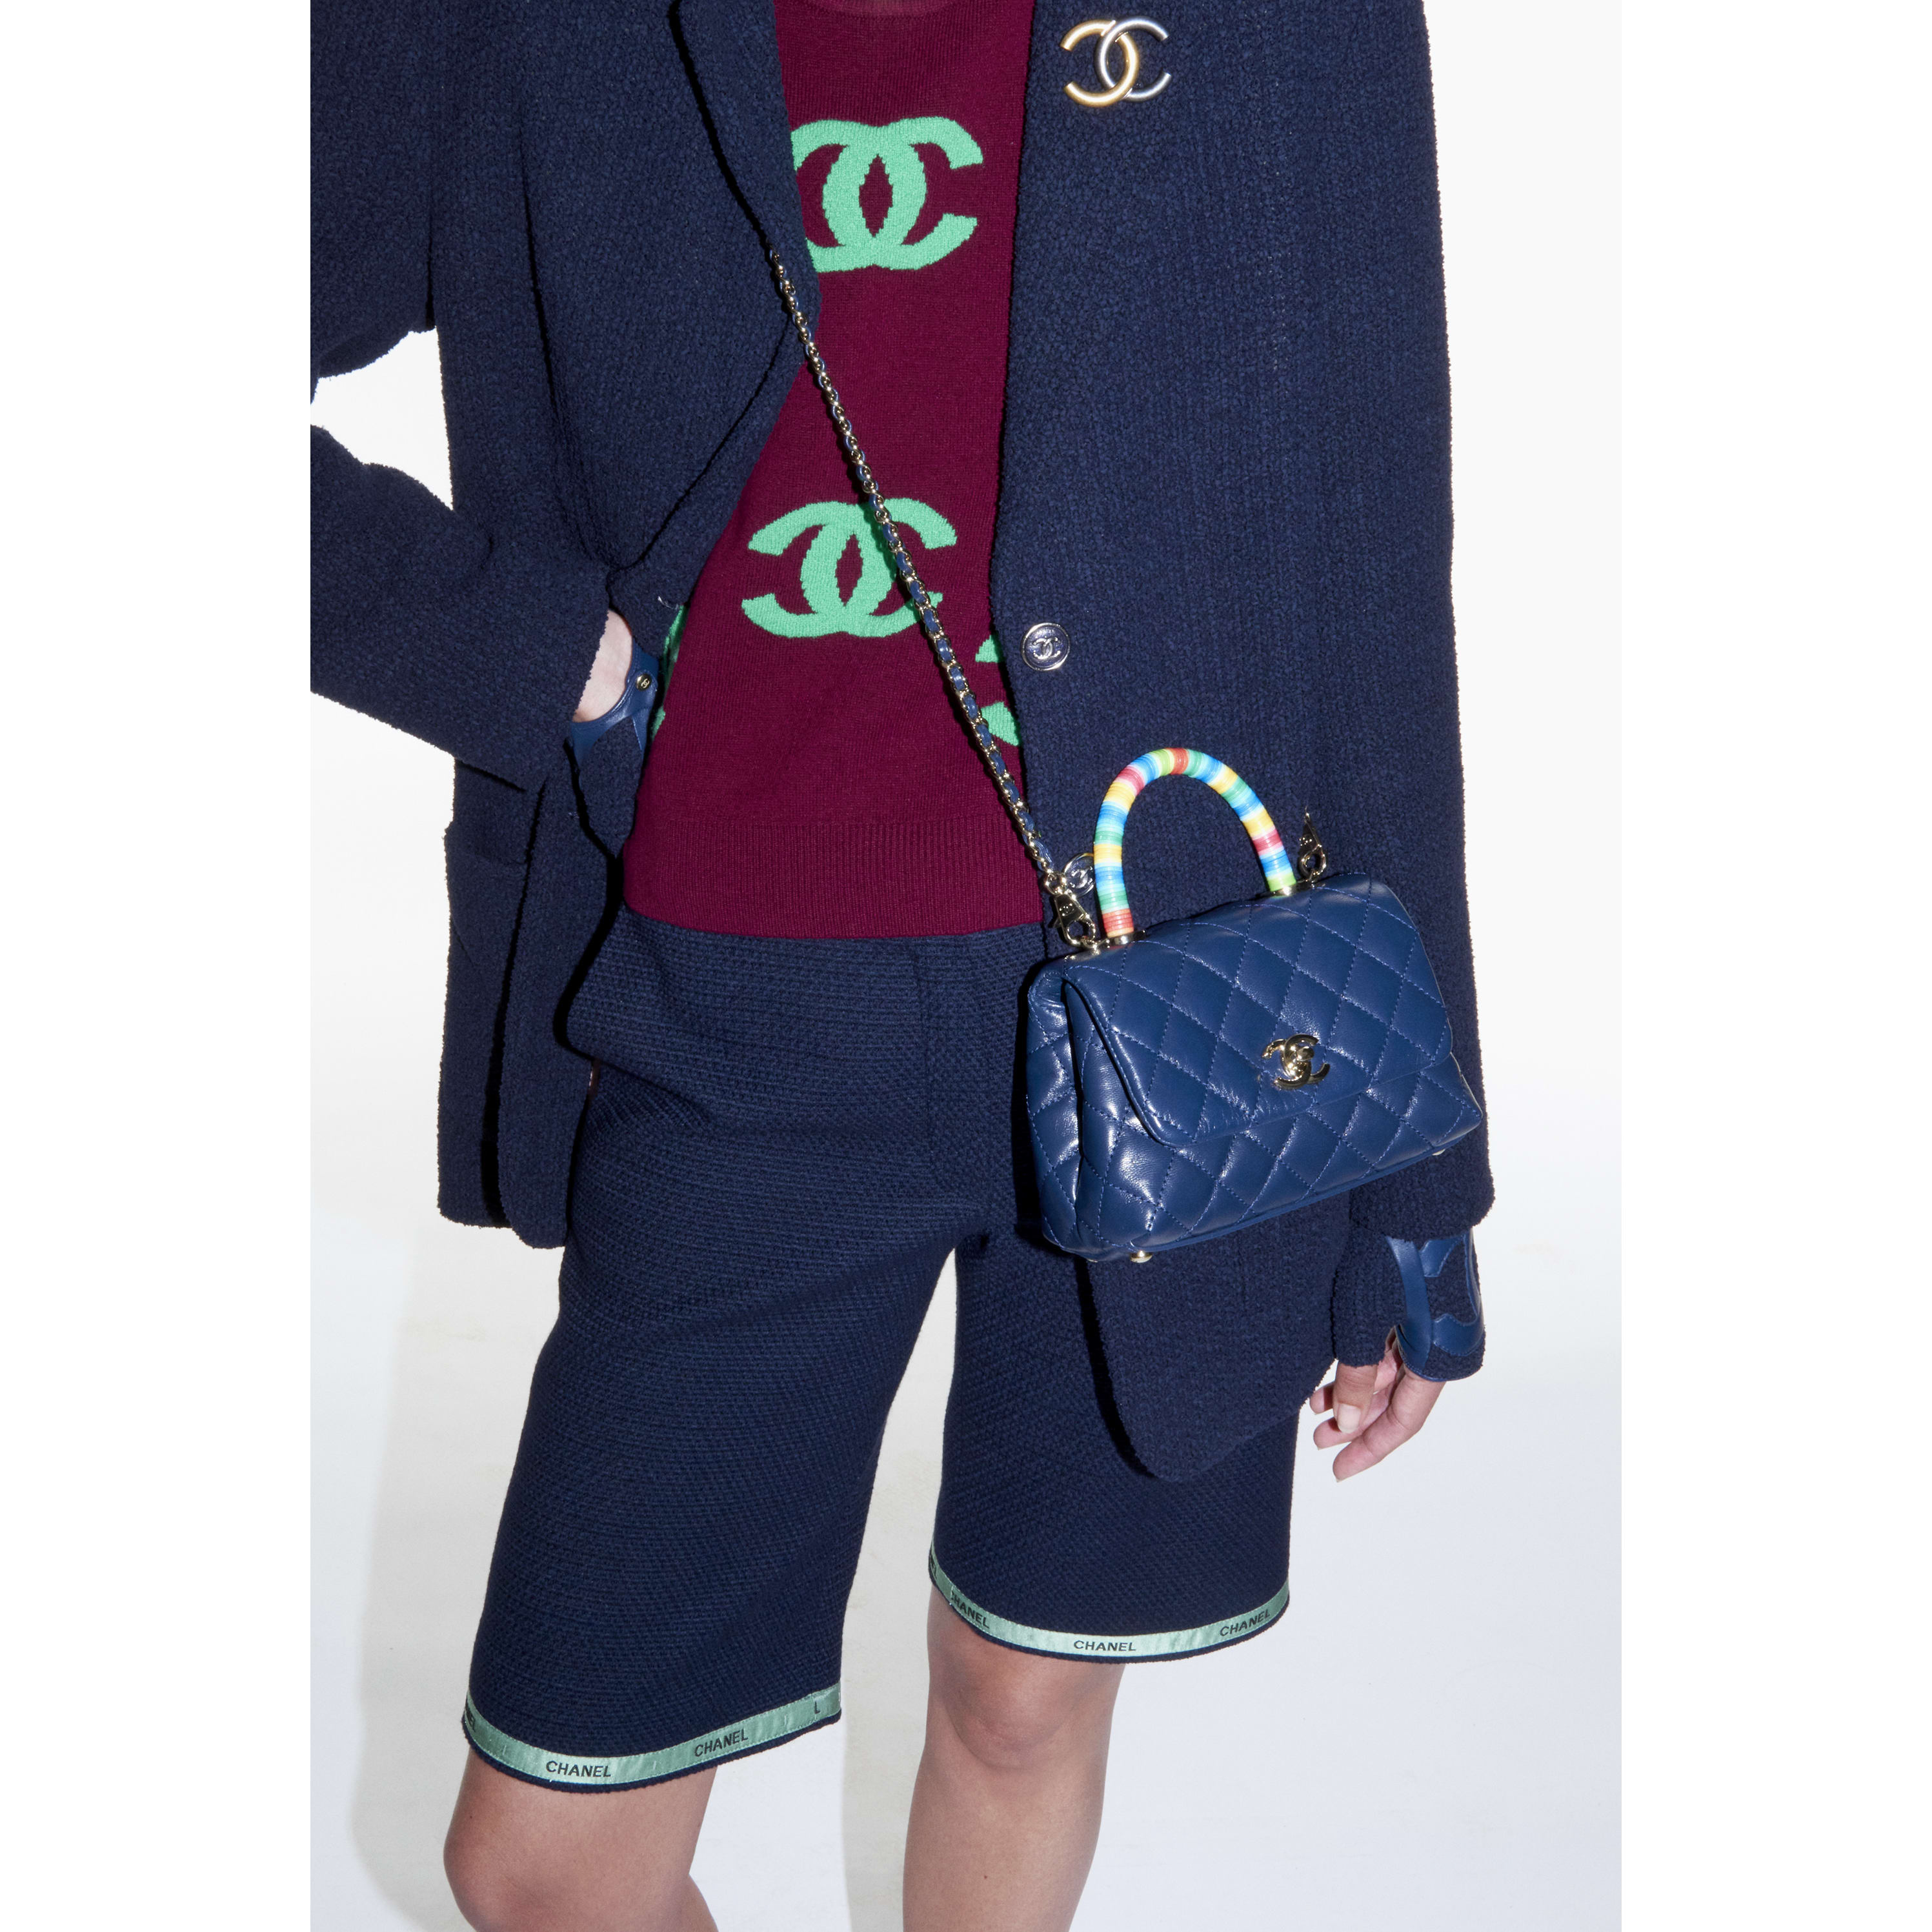 Bermuda Shorts - Navy Blue & Green - Cotton Tweed - CHANEL - Alternative view - see standard sized version